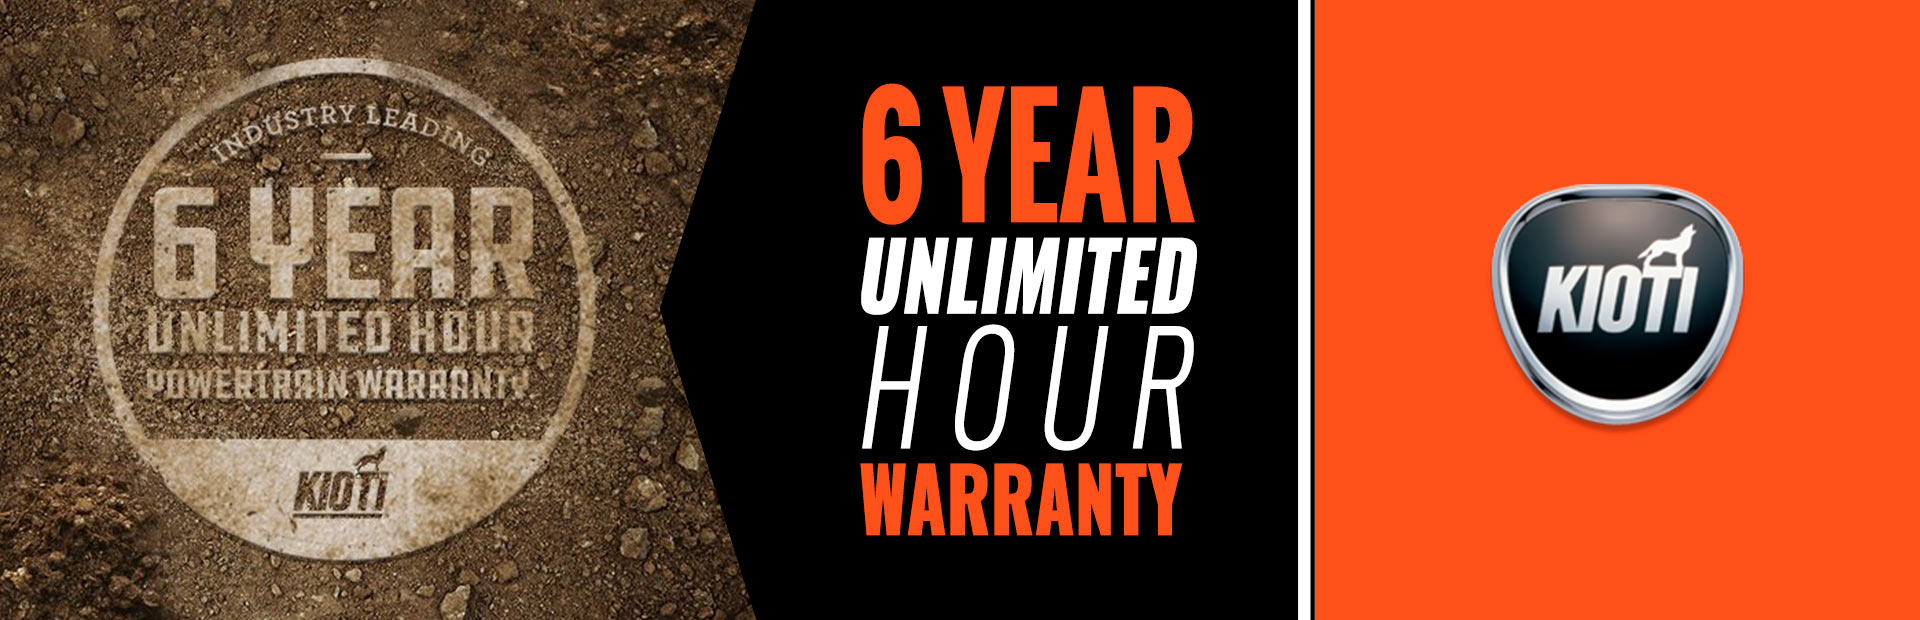 KIOTI: 6 Year Unlimited Hour Warranty